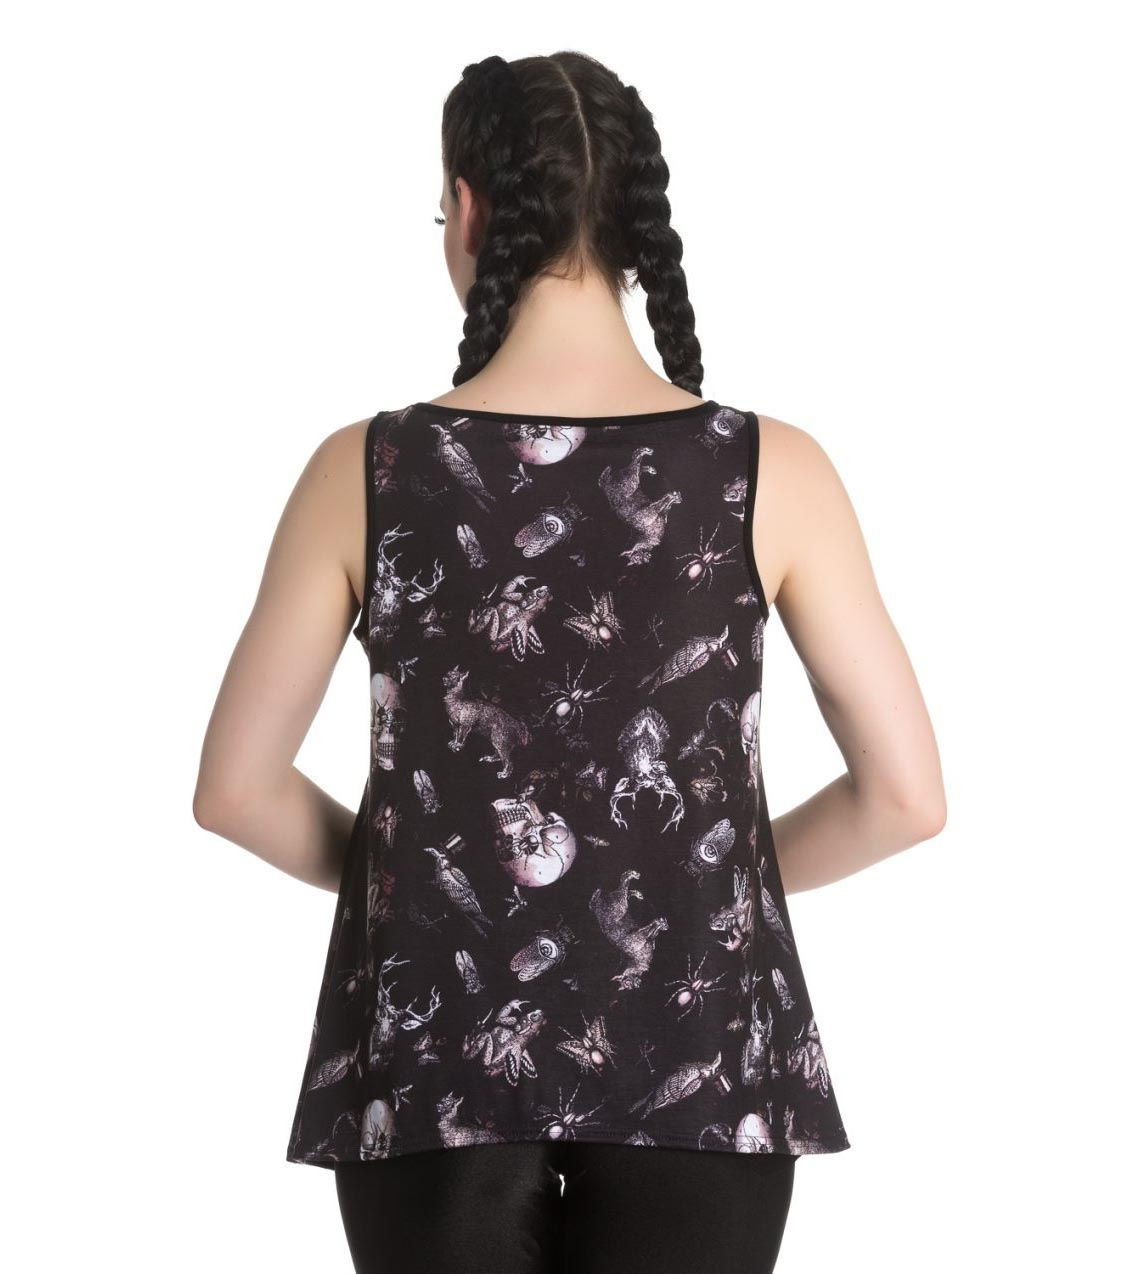 Hell-Bunny-Black-Vest-Cami-Top-Goth-Witch-DARWIN-Taxidermy-Skulls-All-Sizes thumbnail 17